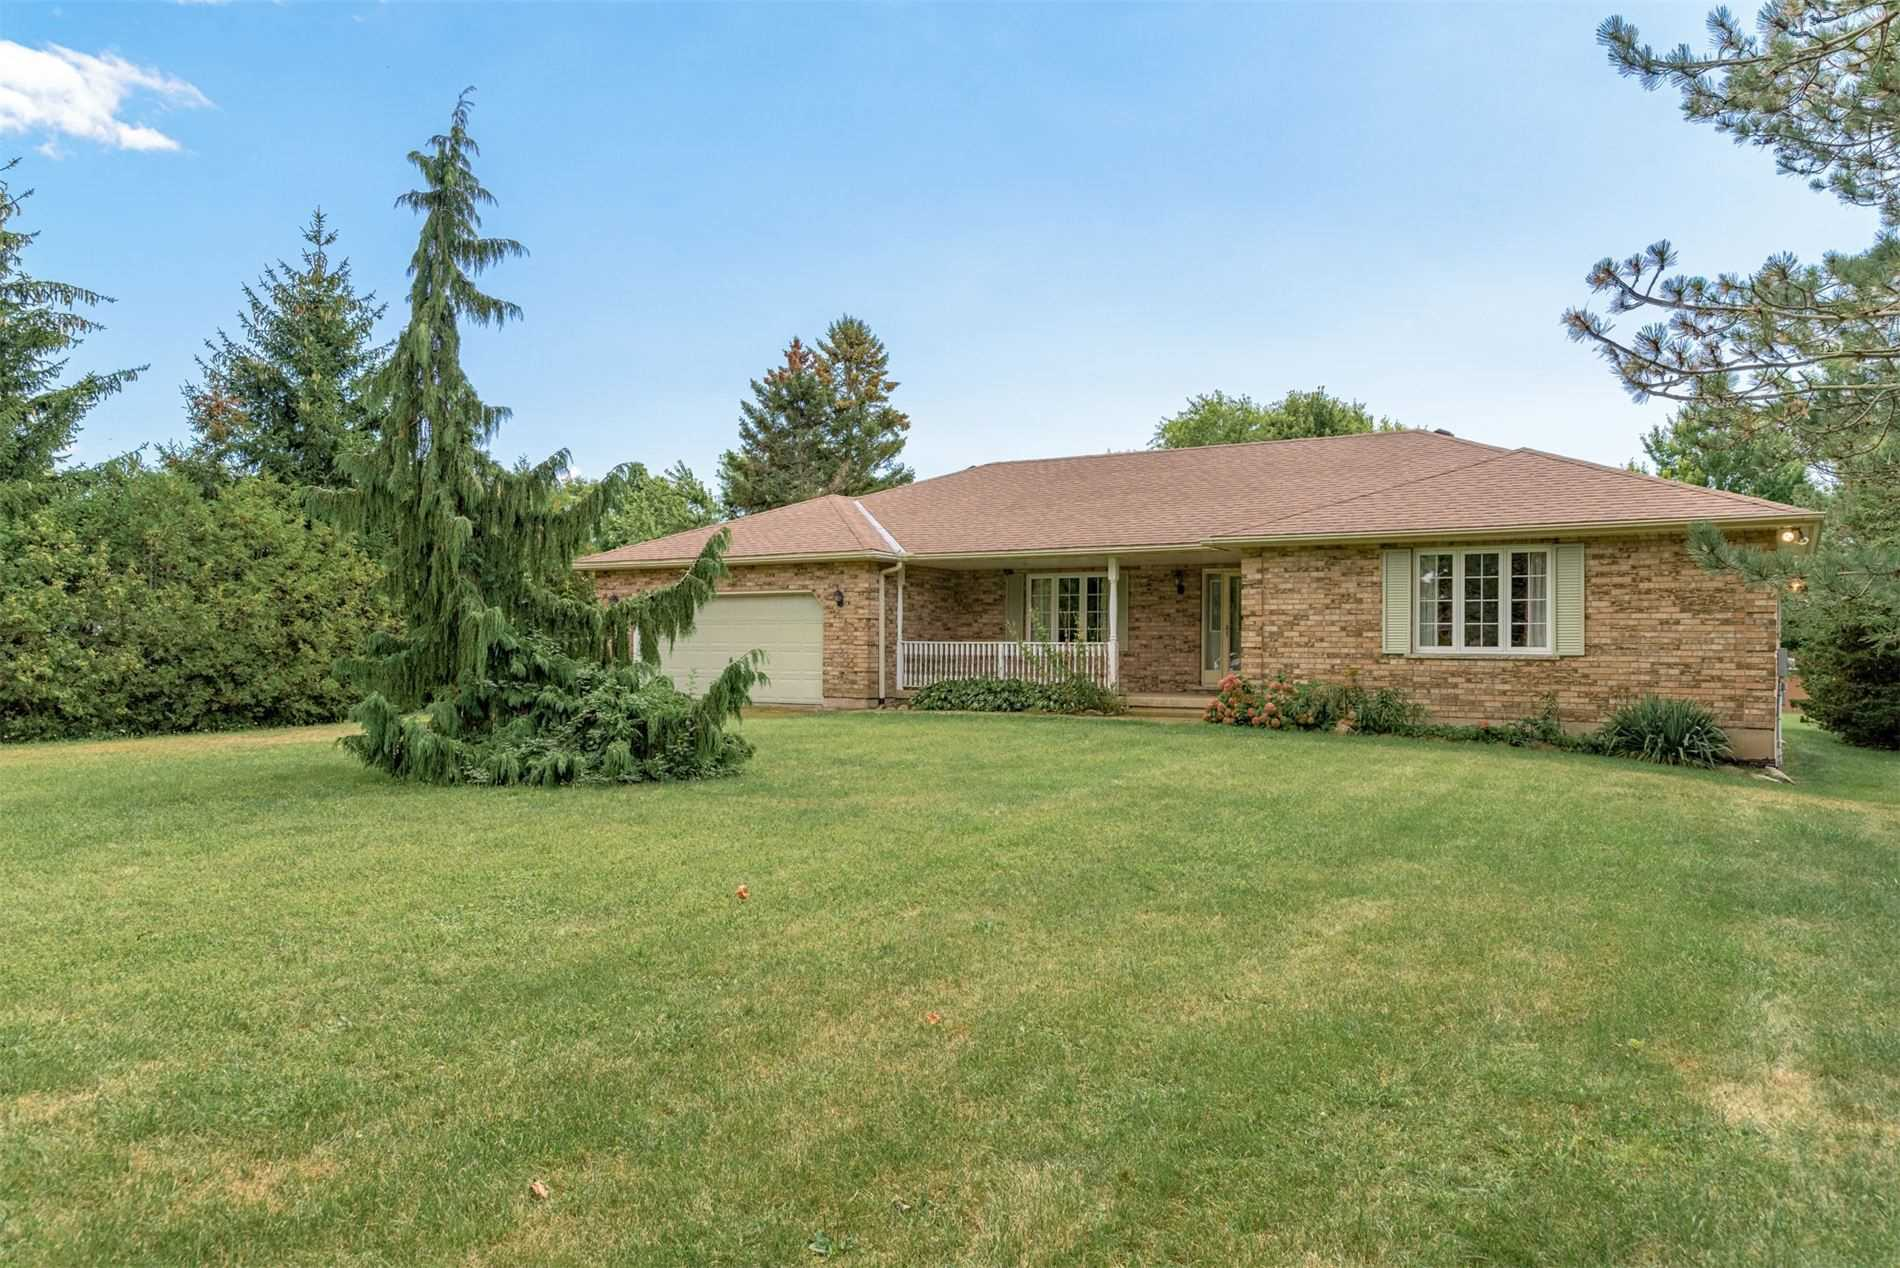 Detached house For Sale In Fort Erie - 30 Stonehaven Rd, Fort Erie, Ontario, Canada N1A 2W6 , 3 Bedrooms Bedrooms, ,3 BathroomsBathrooms,Detached,For Sale,Stonehaven